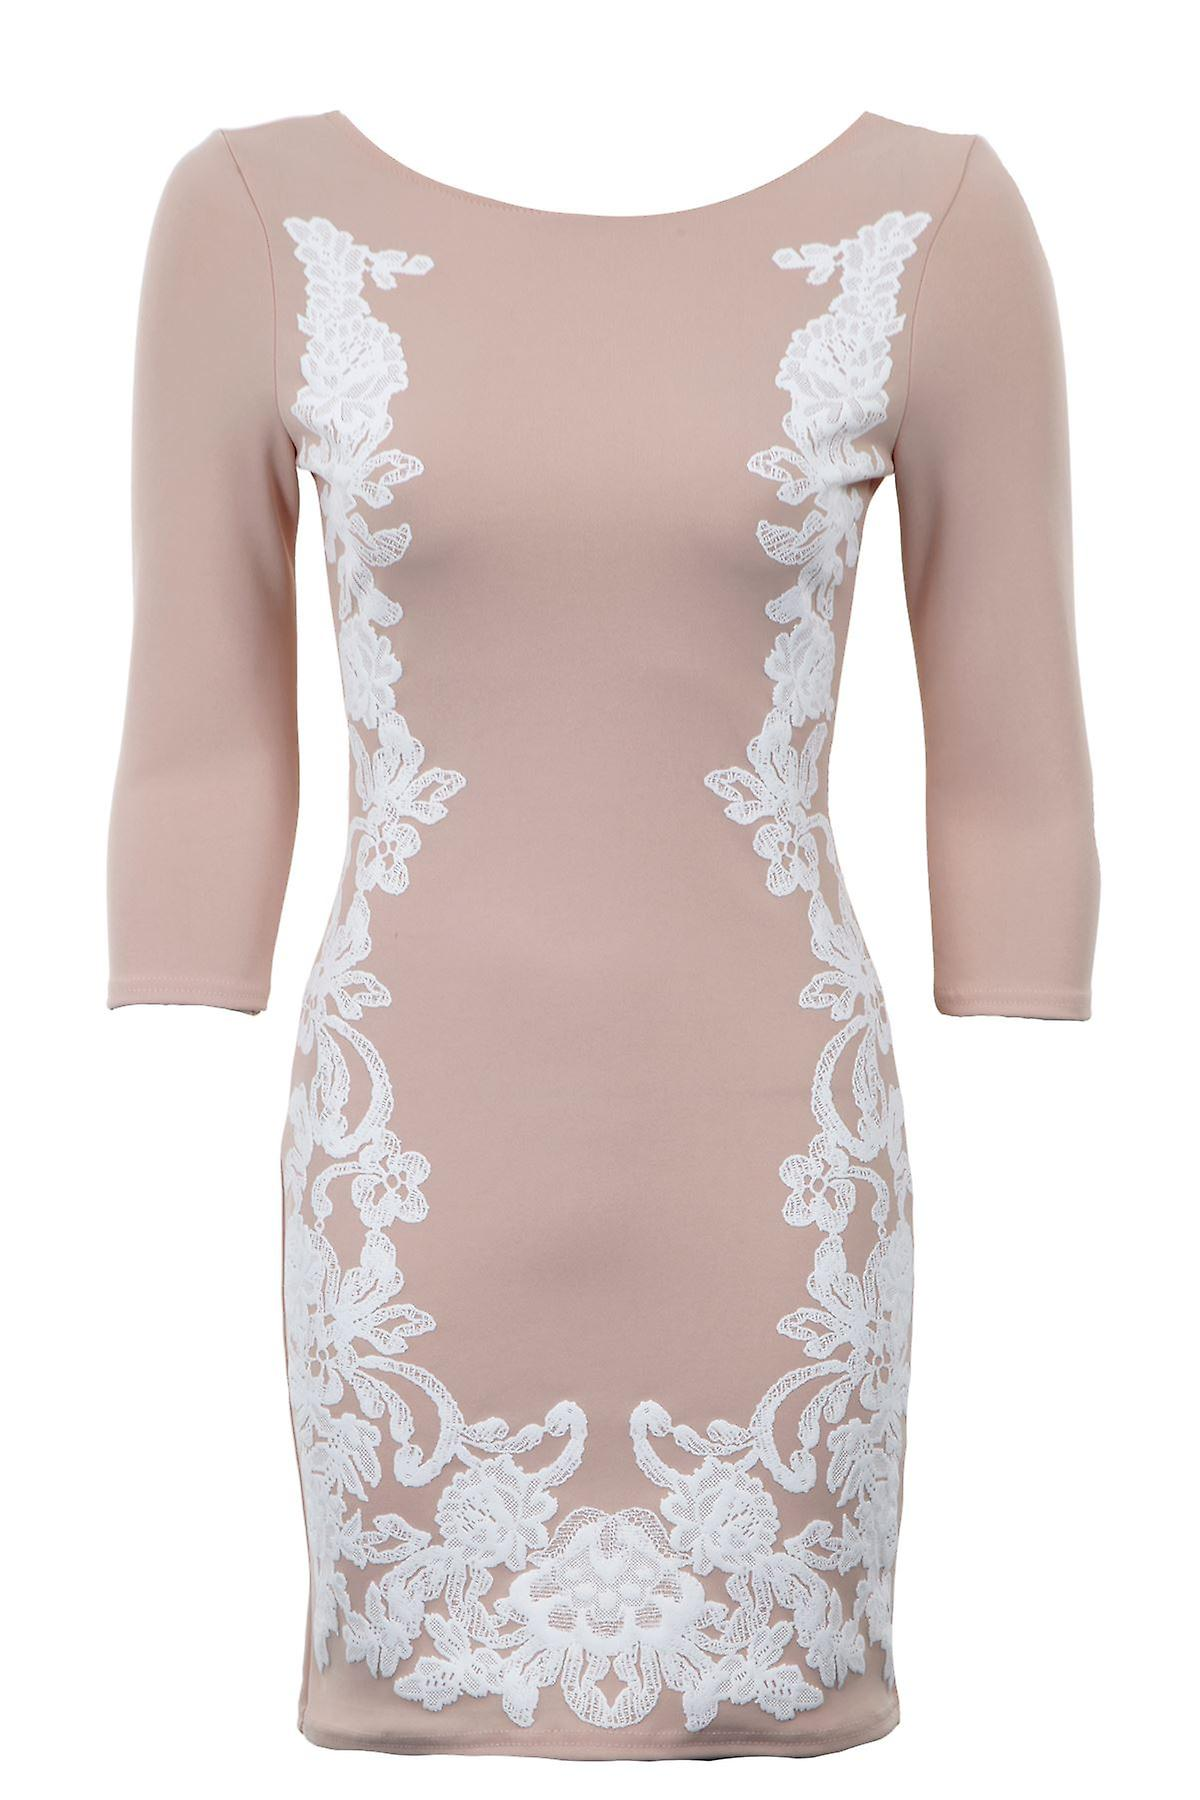 New Ladies 3/4 Sleeves Floral Embossed Slim Fitting Bodycon Women's Dress